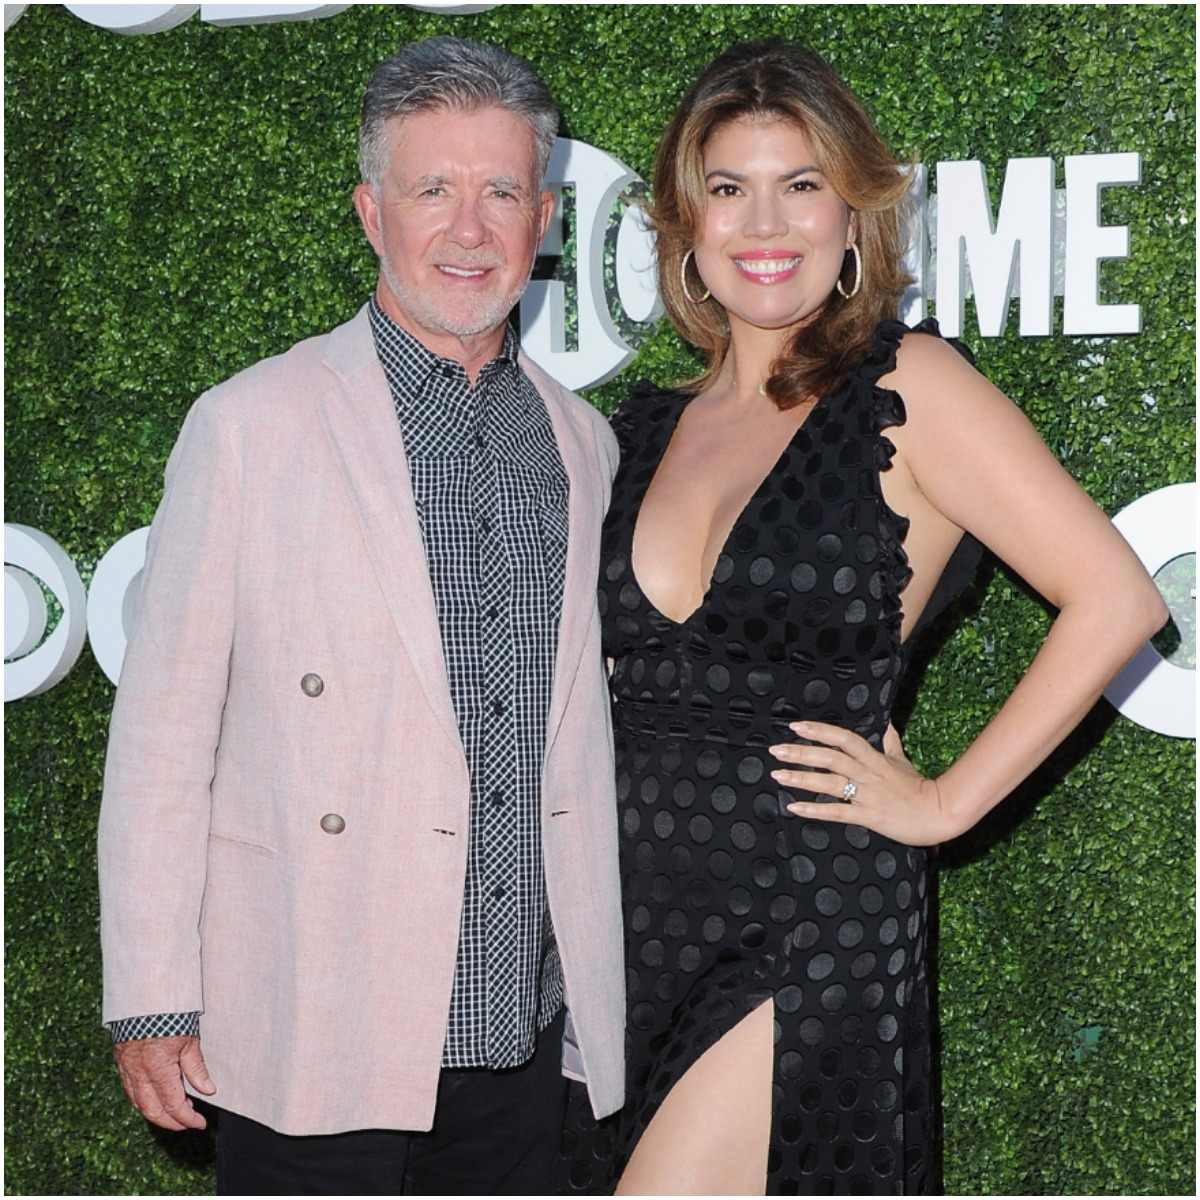 Alan Thicke and his wife Tanya Thicke